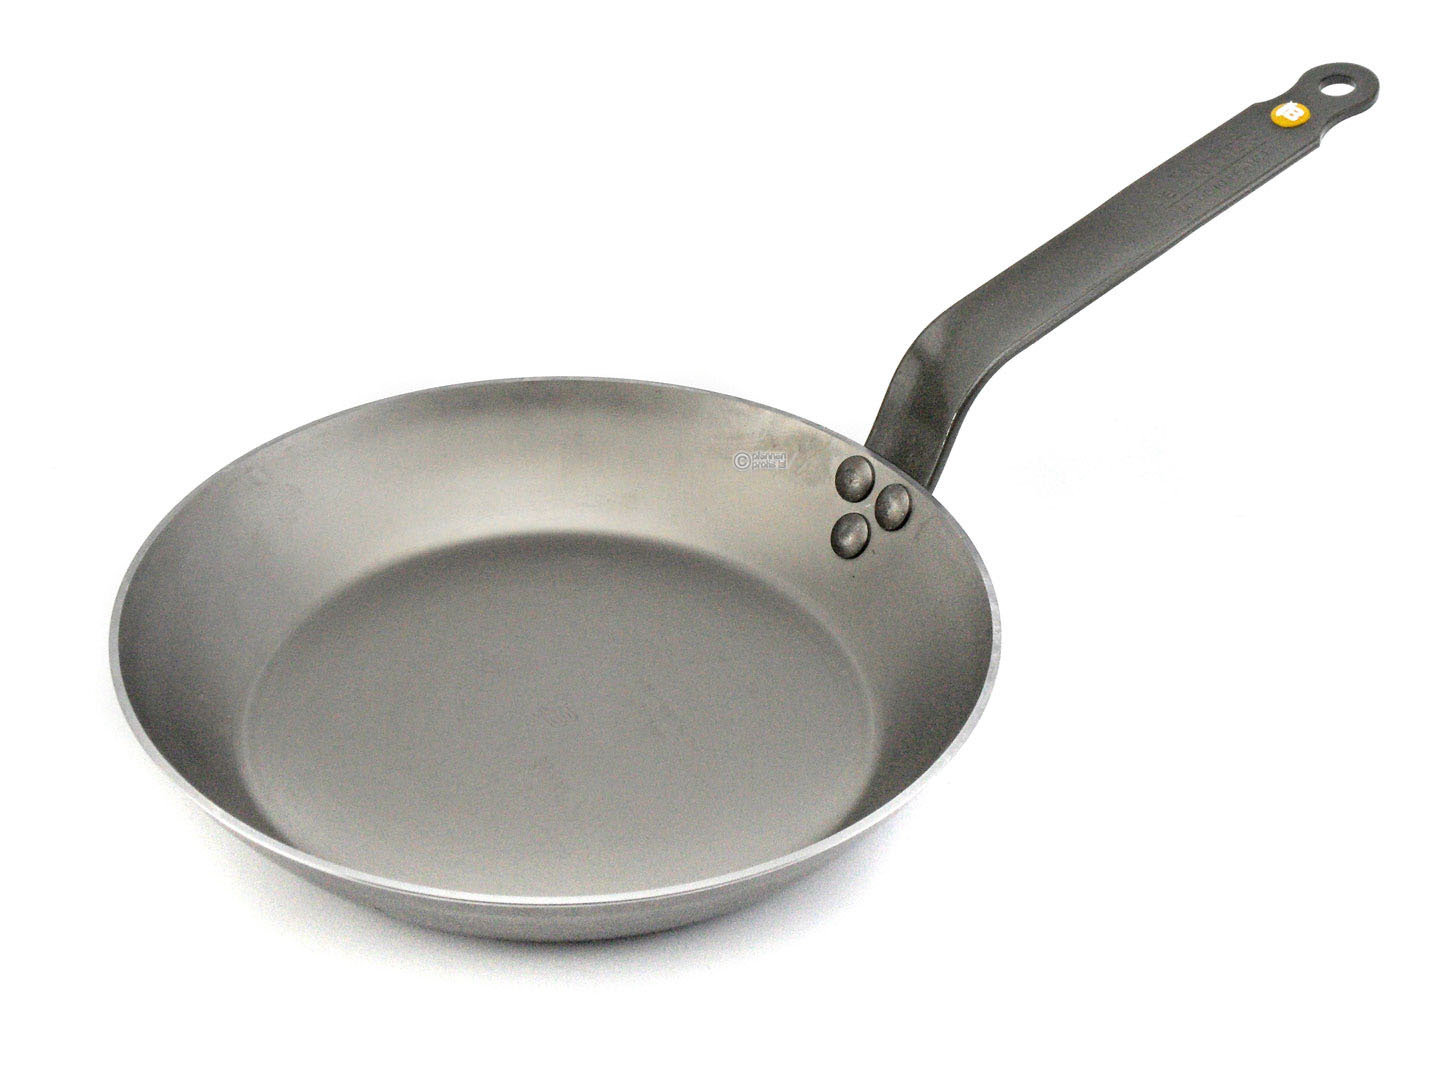 DE BUYER iron pan MINERAL B ELEMENT 24 cm frypan